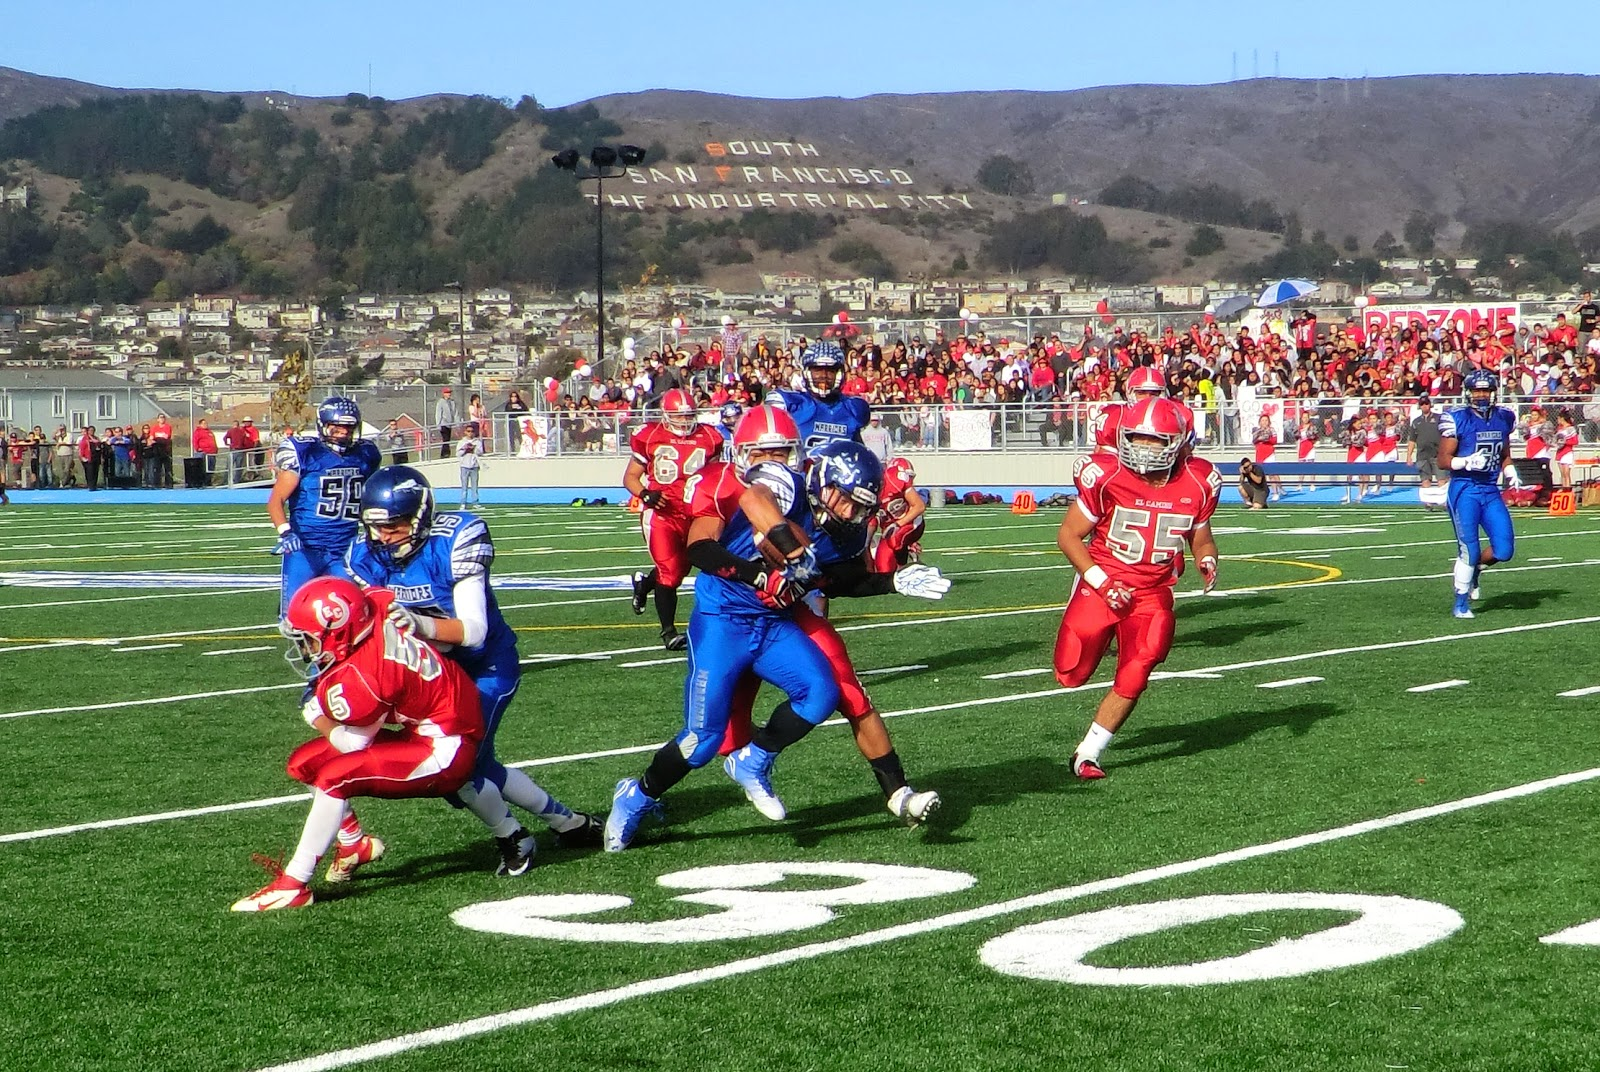 South City's Eric Kamelamela is brought down on a run during the first half of the 2014 Bell Game.